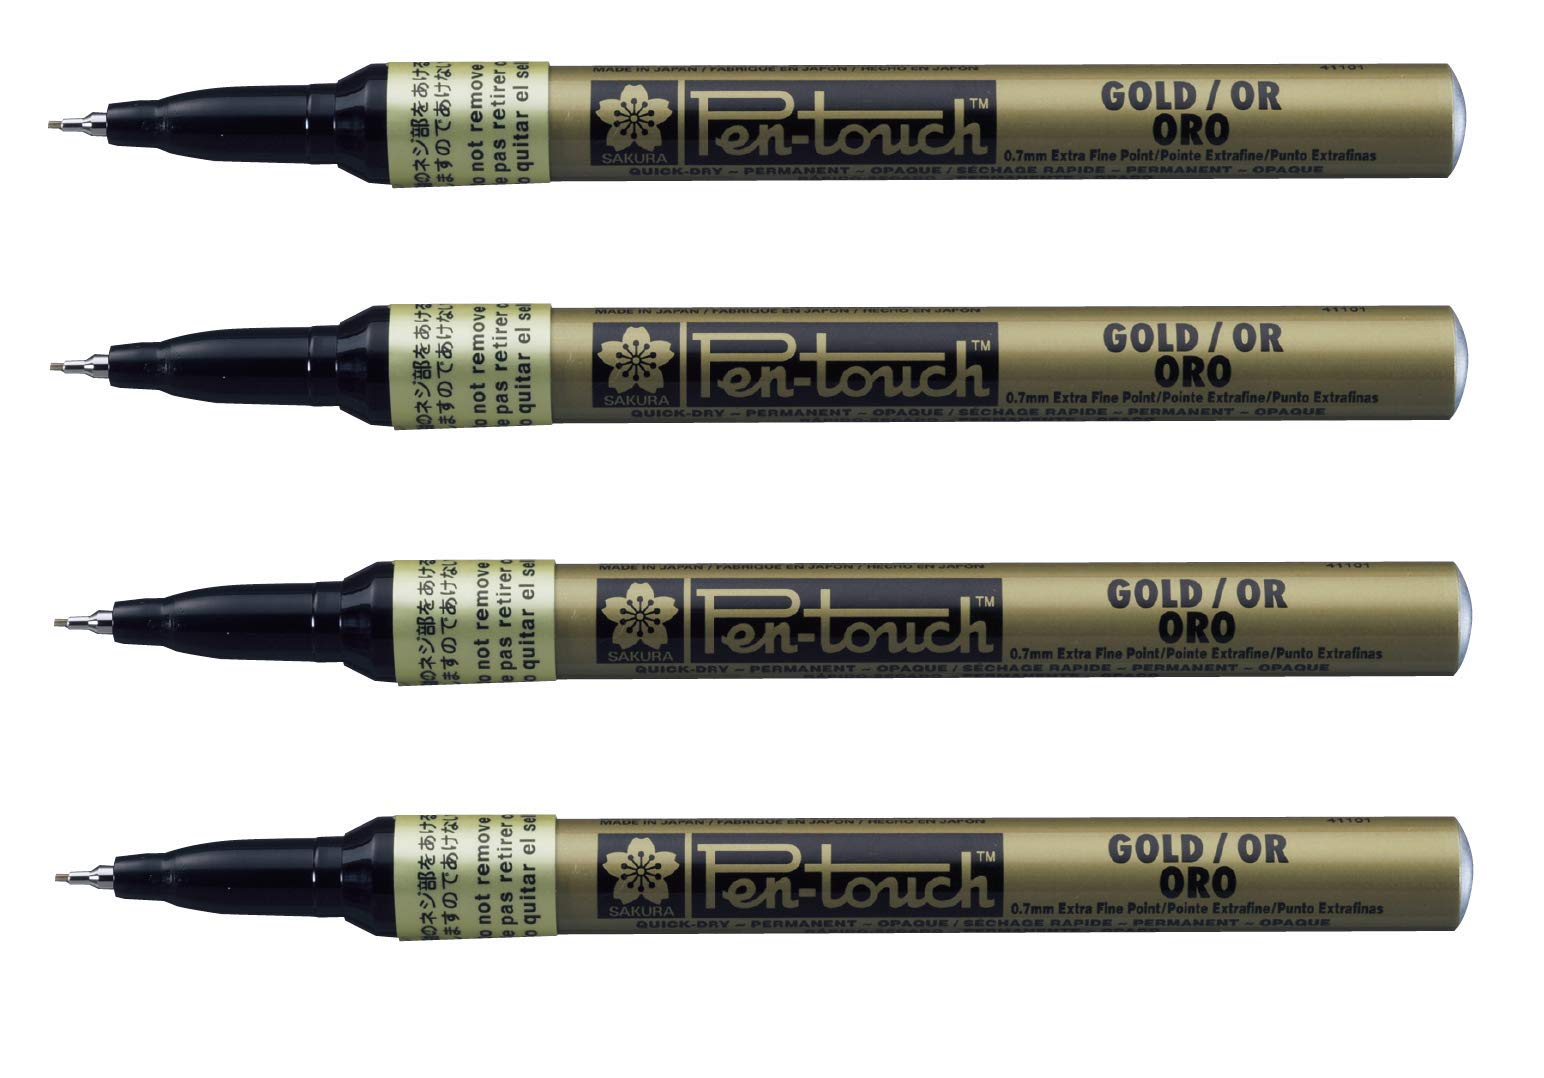 Sakura Pen-Touch Paint Marker 0.7 mm Extra fine metallic Gold color, Pack of 4